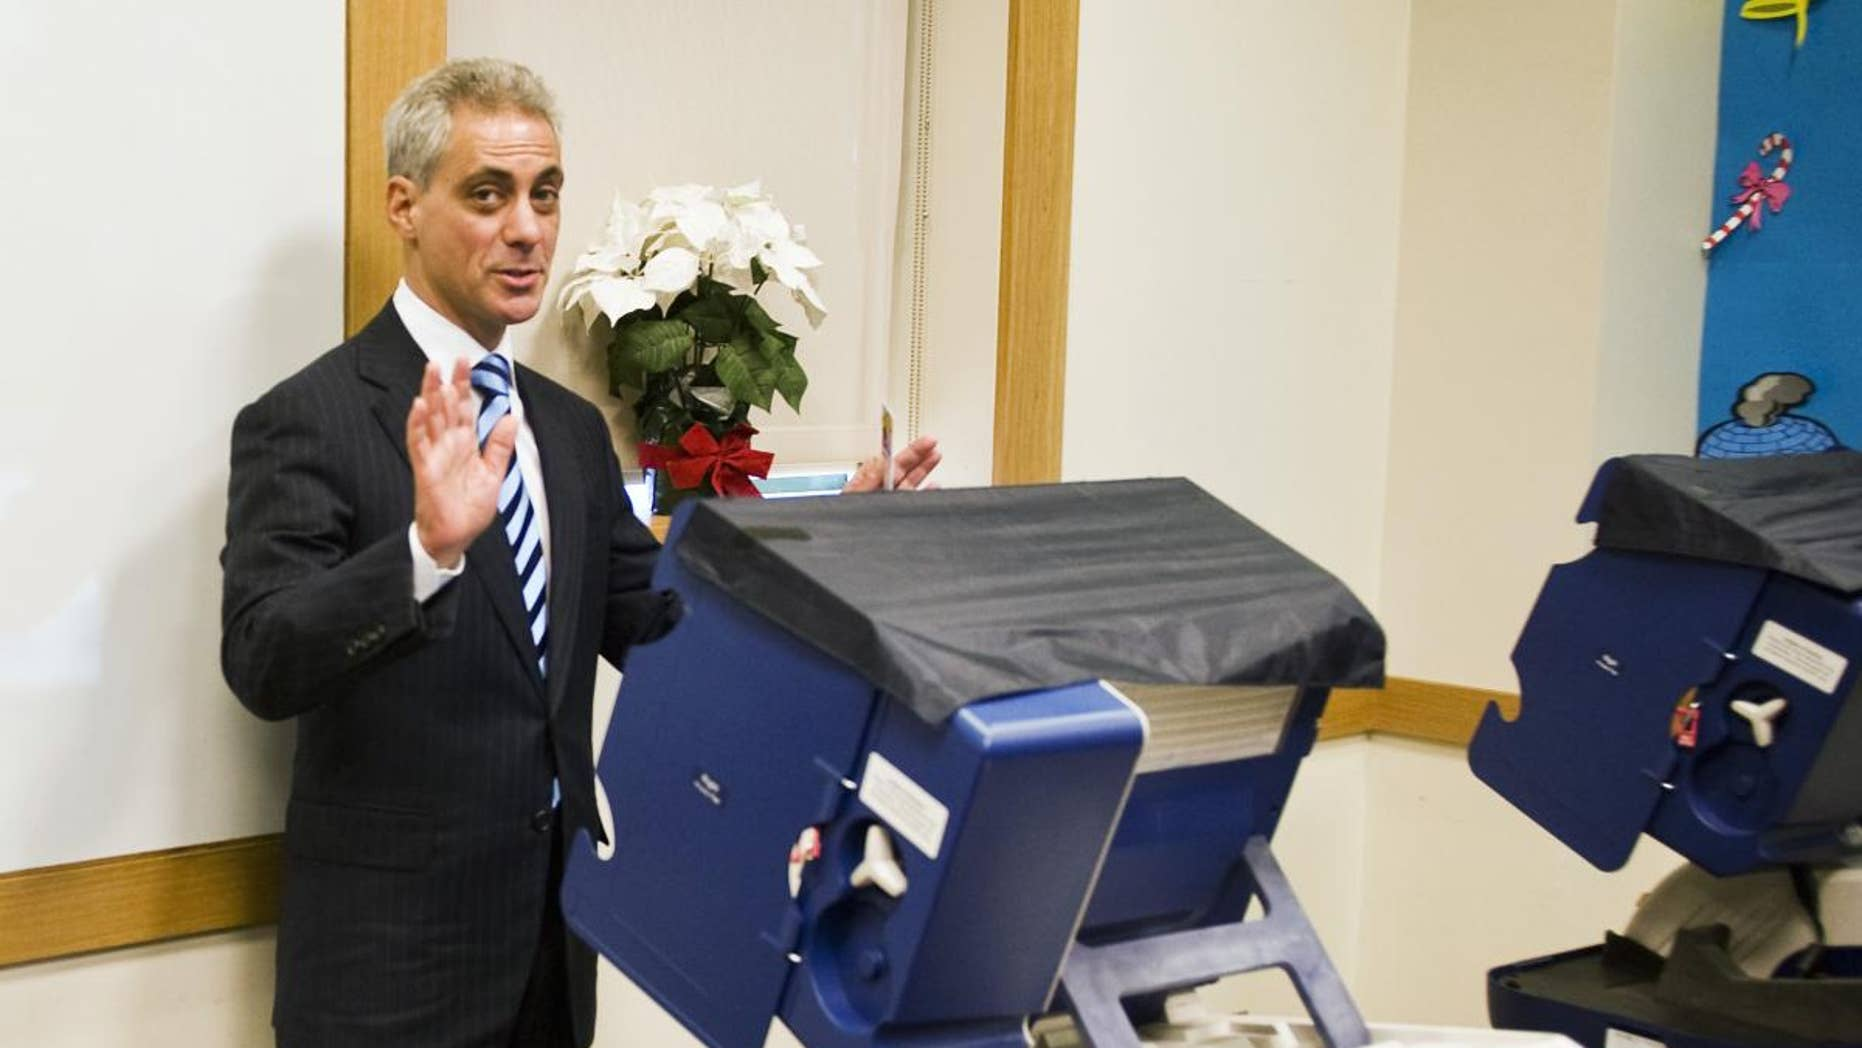 Chicago mayoral candidate Rahm Emanuel casts his ballot Monday, Jan. 31, 2011, at a Chicago public library on the first day of early voting for the Feb. 22, 2011 mayoral election. (AP Photo/Chicago Sun-Times, Rich Hein)